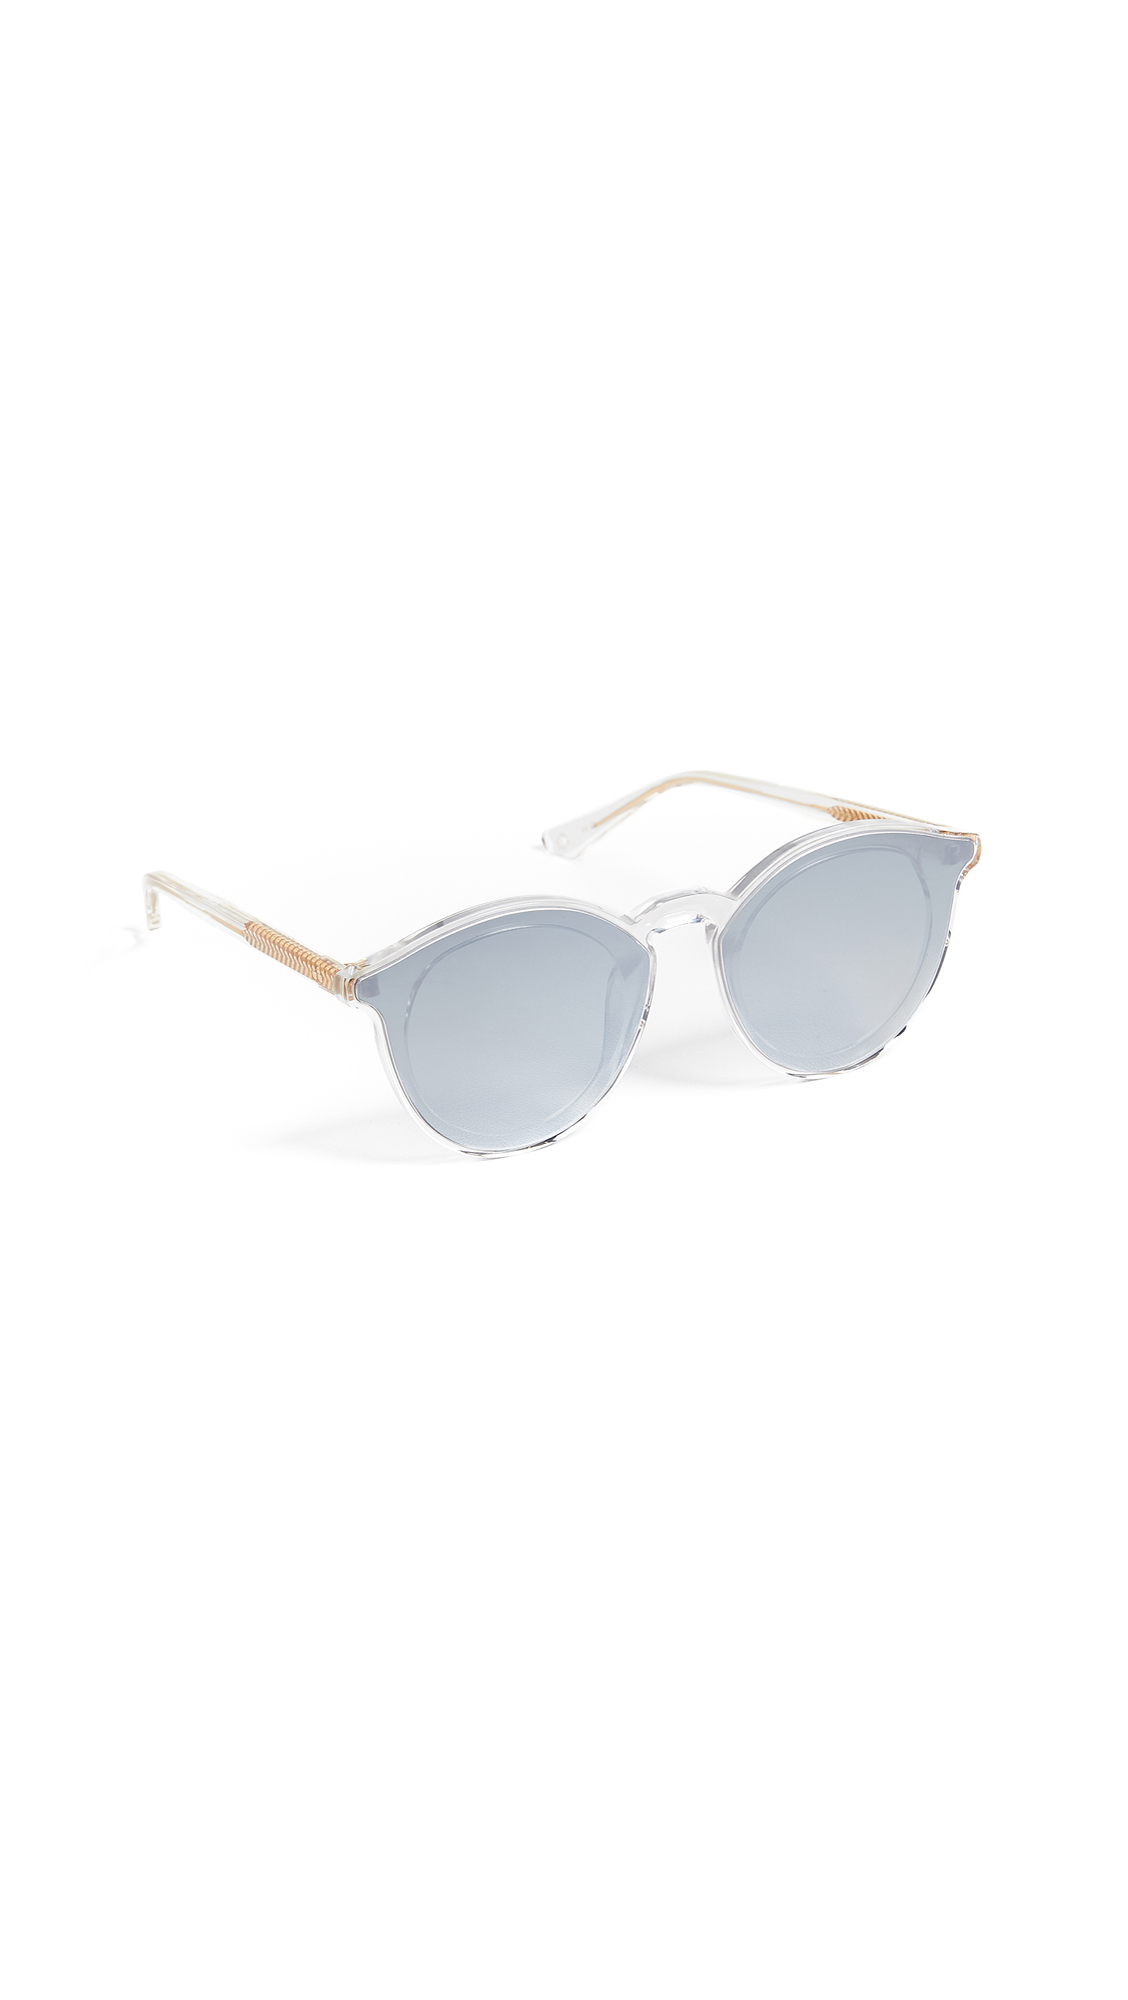 KREWE Collins Round Overlay Mirrored Sunglasses in Crystal